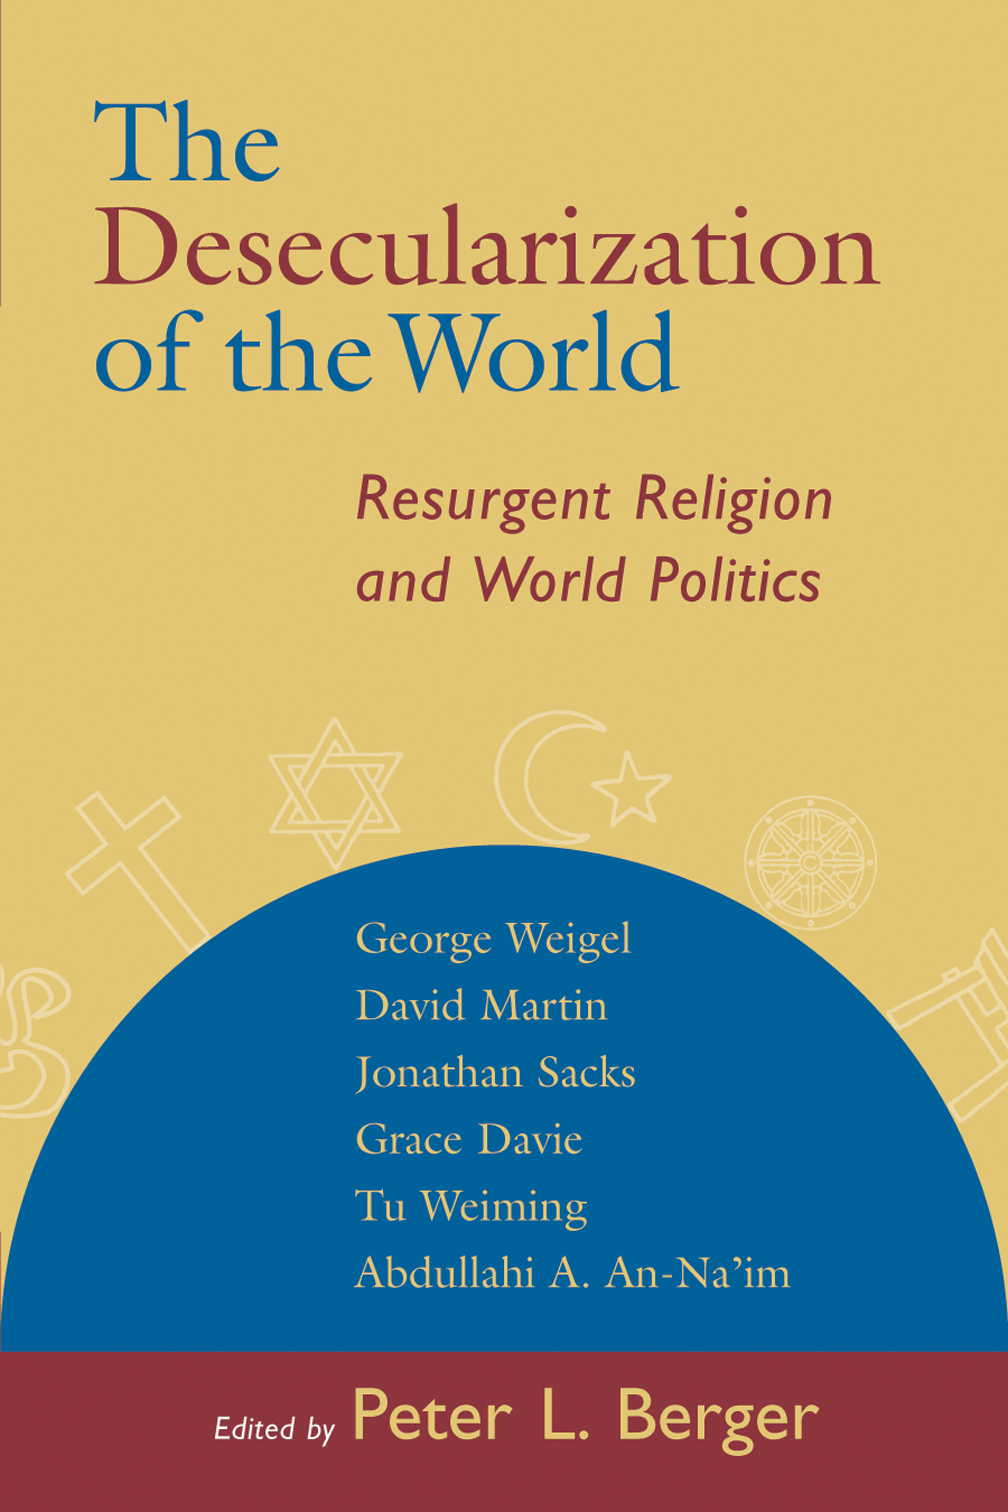 Berger-Desecularization_Reprint06_PB_ISBN 13.qxd